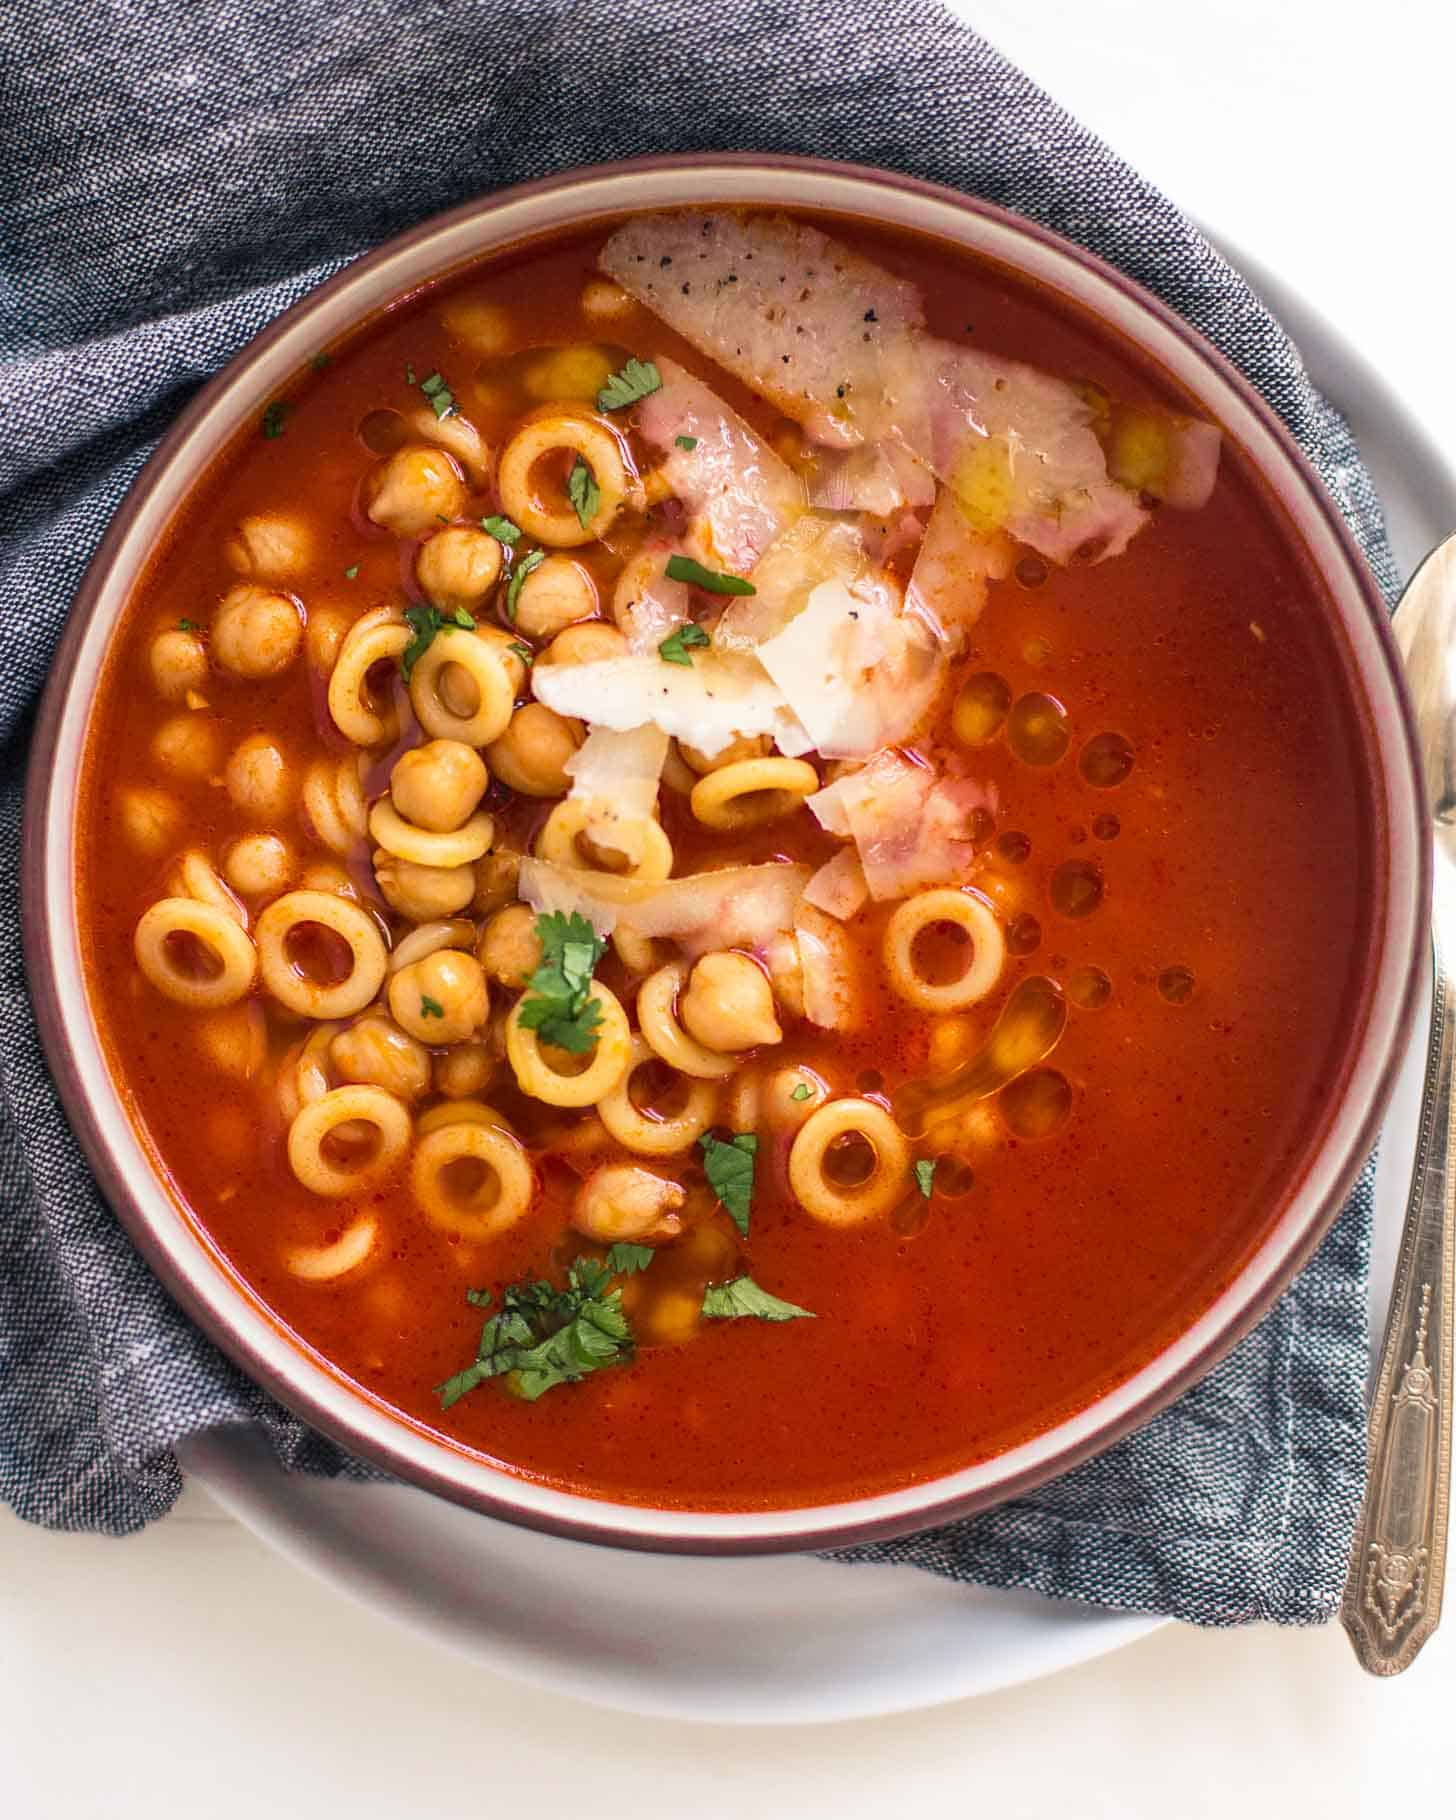 Smoky Tomato Soup with Pasta and Chickpeas in a white bowl